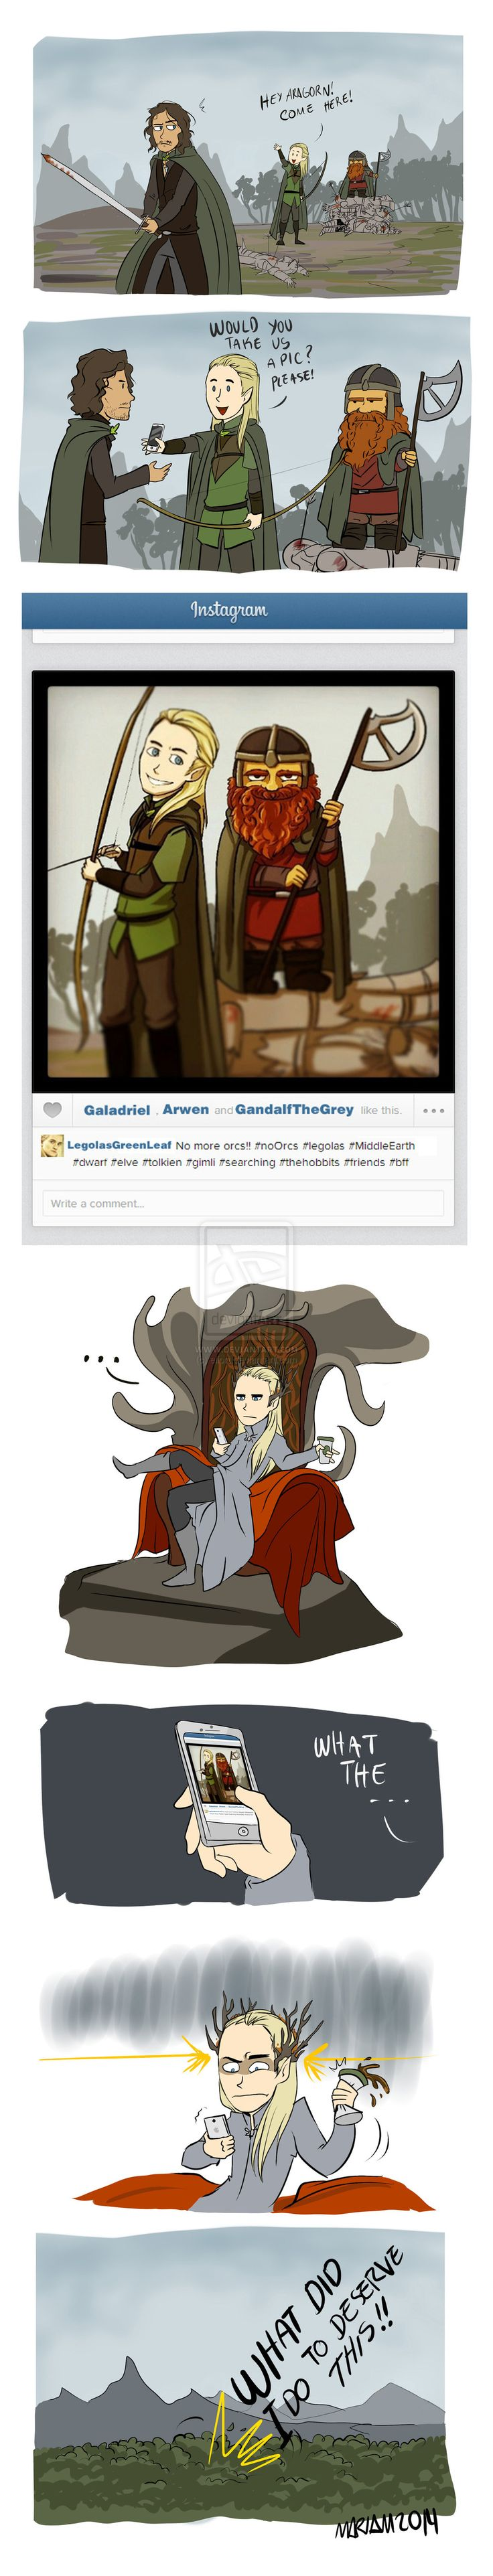 "The Best Friends by eliort.deviantart.com on @deviantART - ""Lord of the Rings"" silliness, featuring Aragorn, Legolas, Gimli, and Thranduil. To fully get what's going on, you'd need to know that Thranduil (Legolas' father) and Gloin (Gimli's father) have some bad blood that's laid out in detail in ""The Hobbit"". ;)"